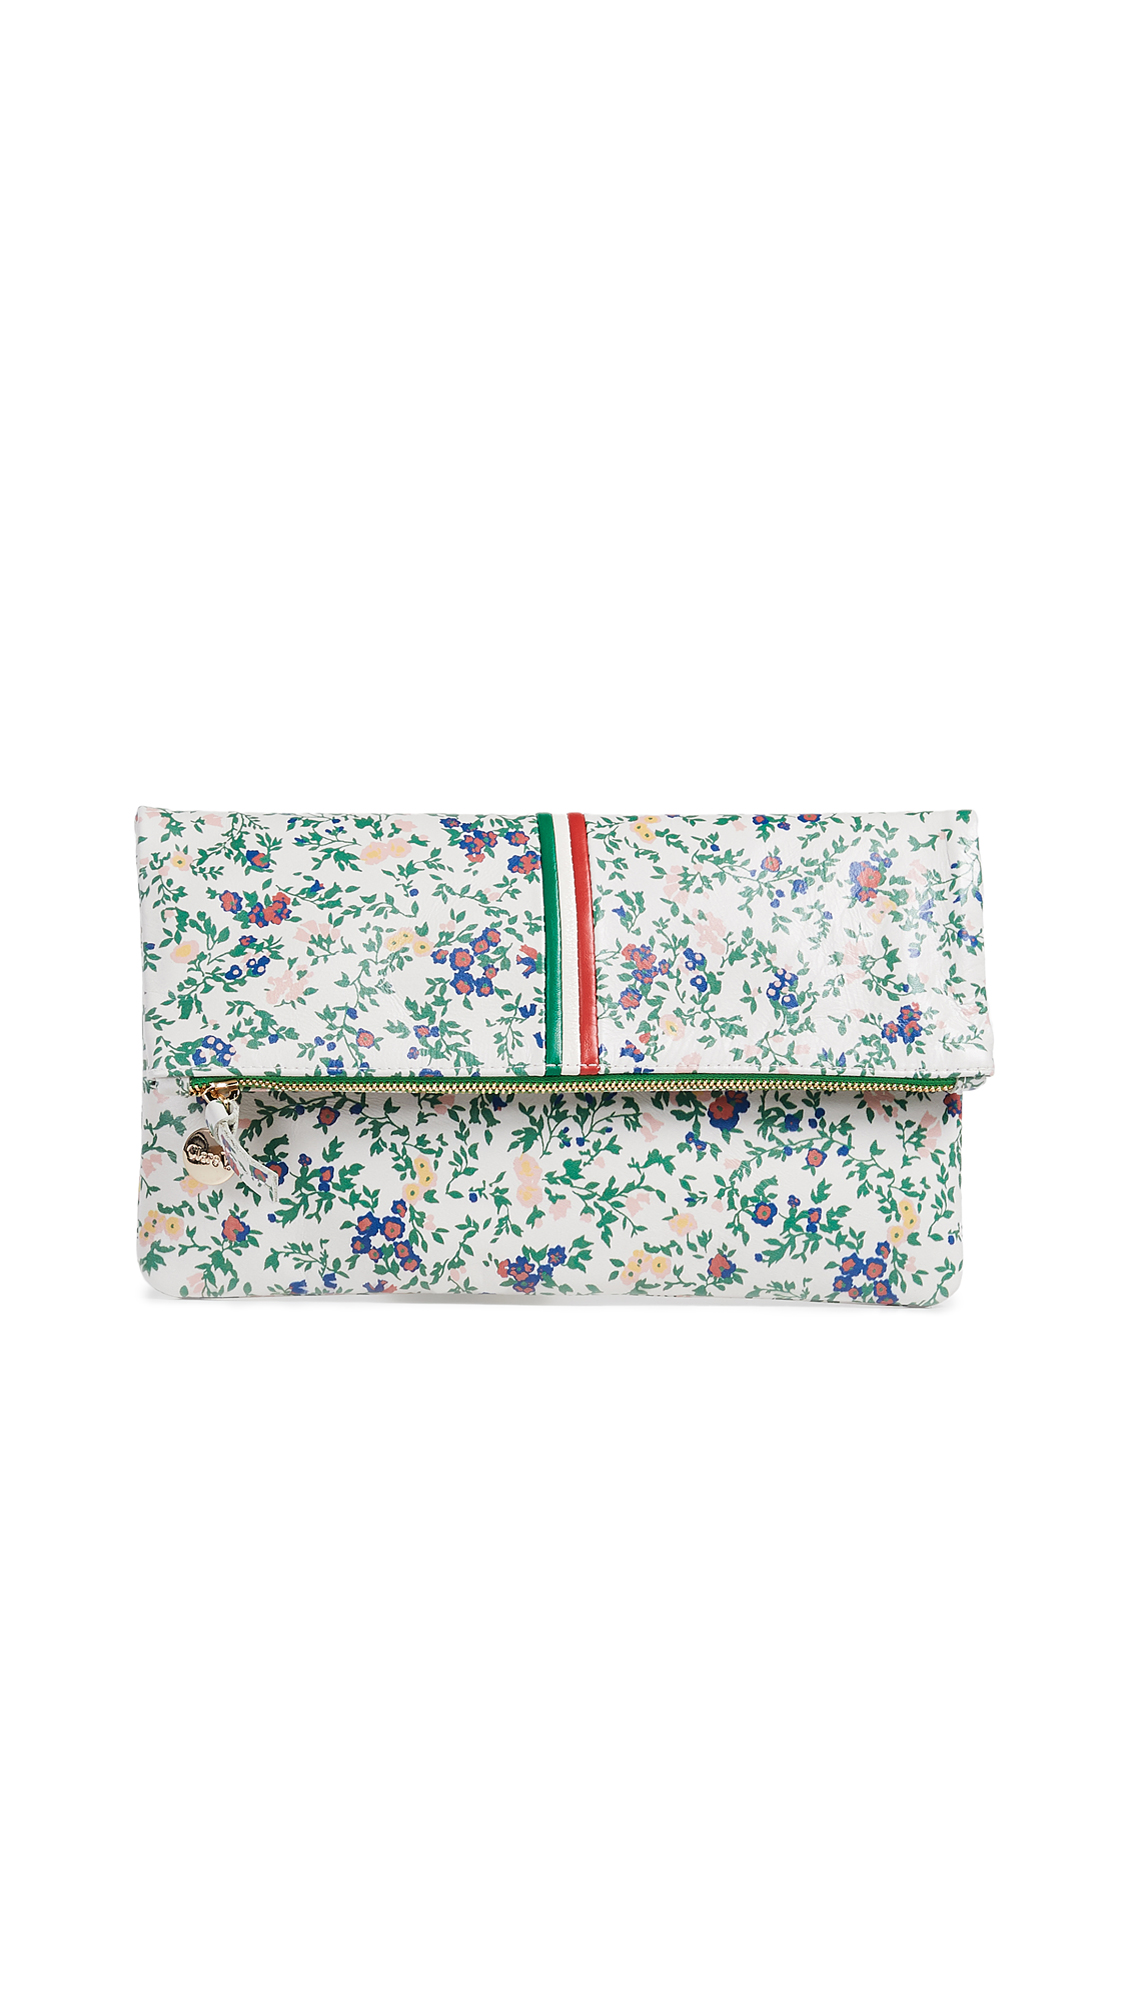 DITSY FLORAL FOLDOVER CLUTCH